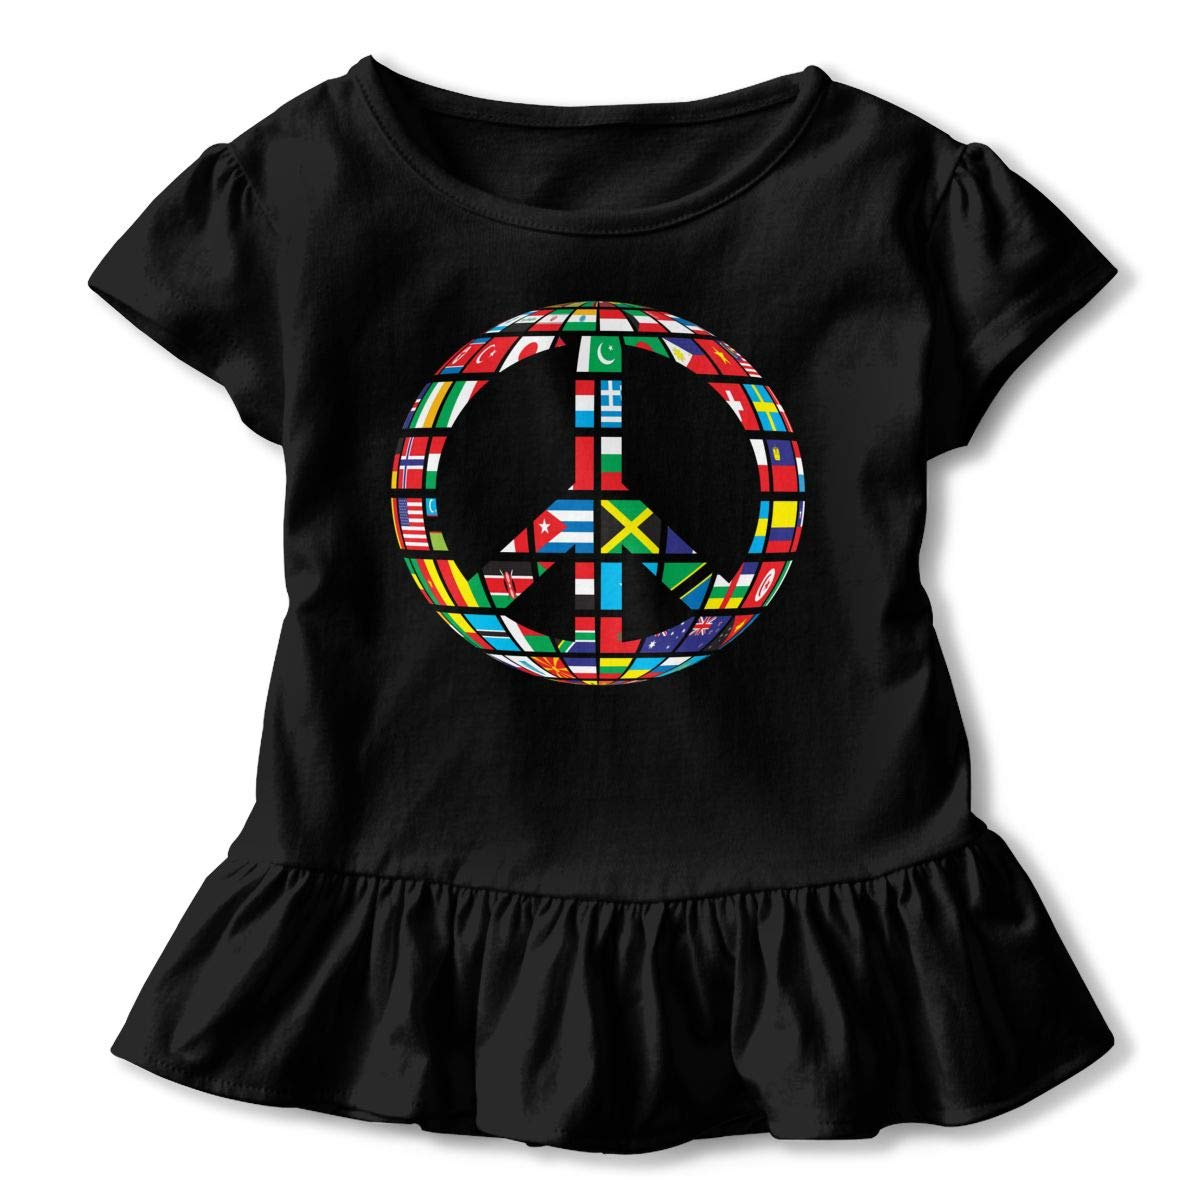 JVNSS Working Together for Peace Shirt Design Toddler Flounced T Shirts Clothes for 2-6T Kids Girls